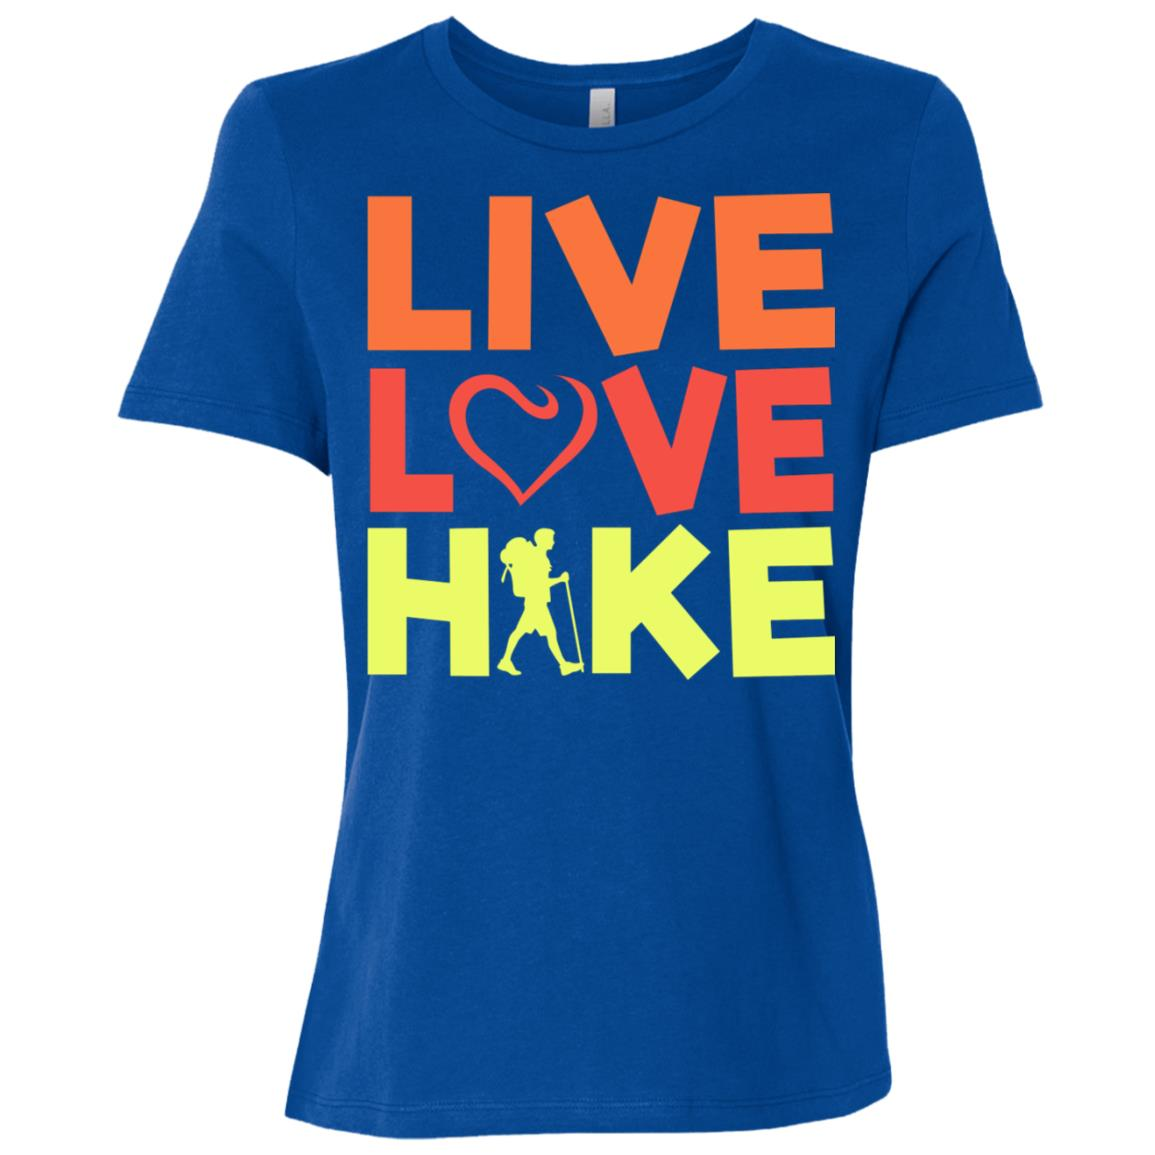 Live Love Hike Women Short Sleeve T-Shirt